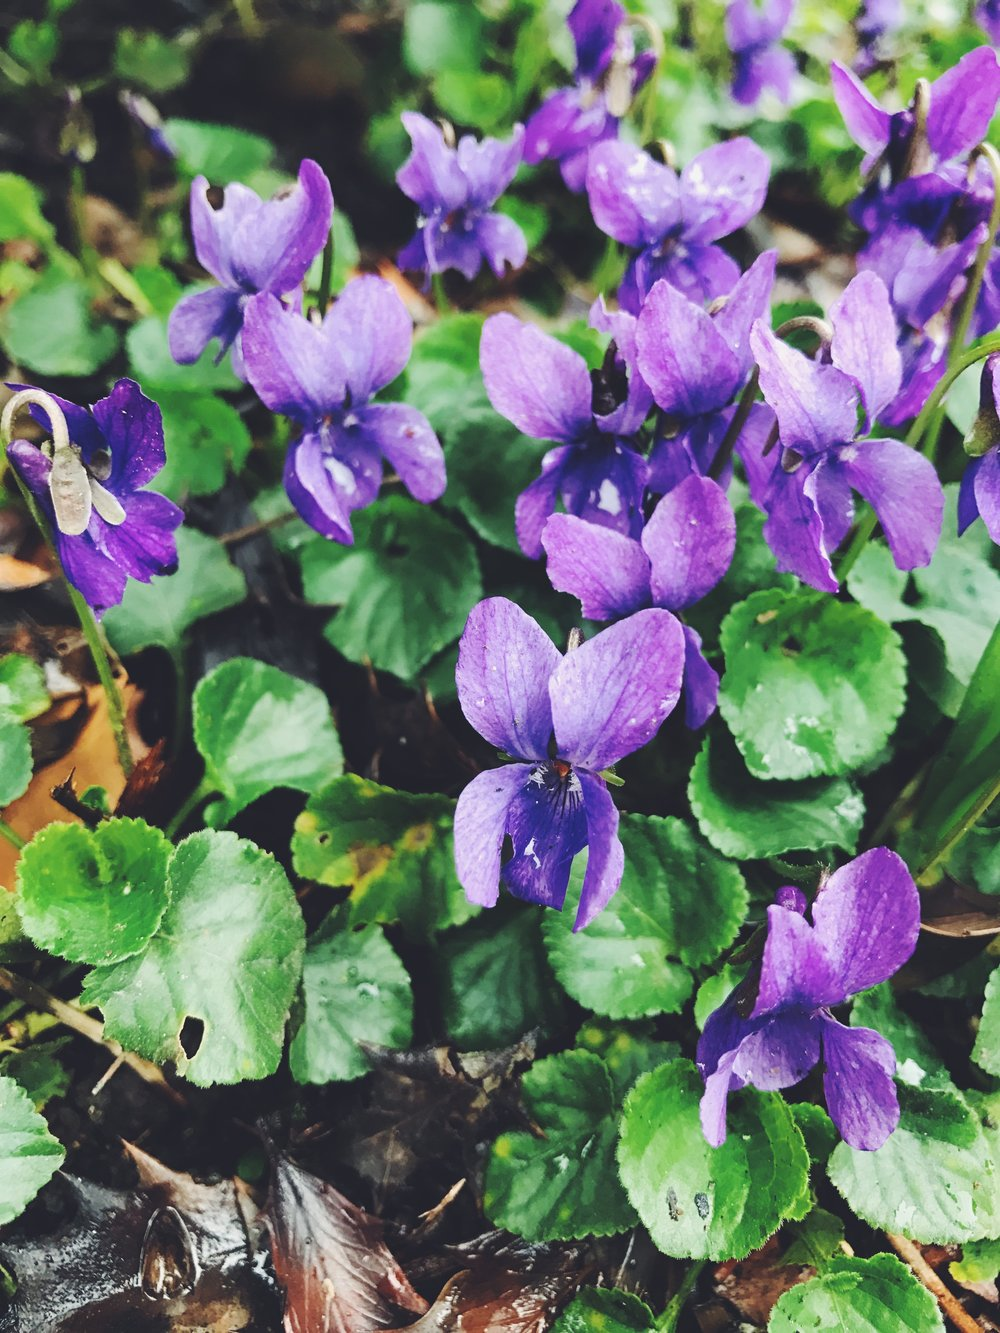 Sweet violets, little harbingers of spring.